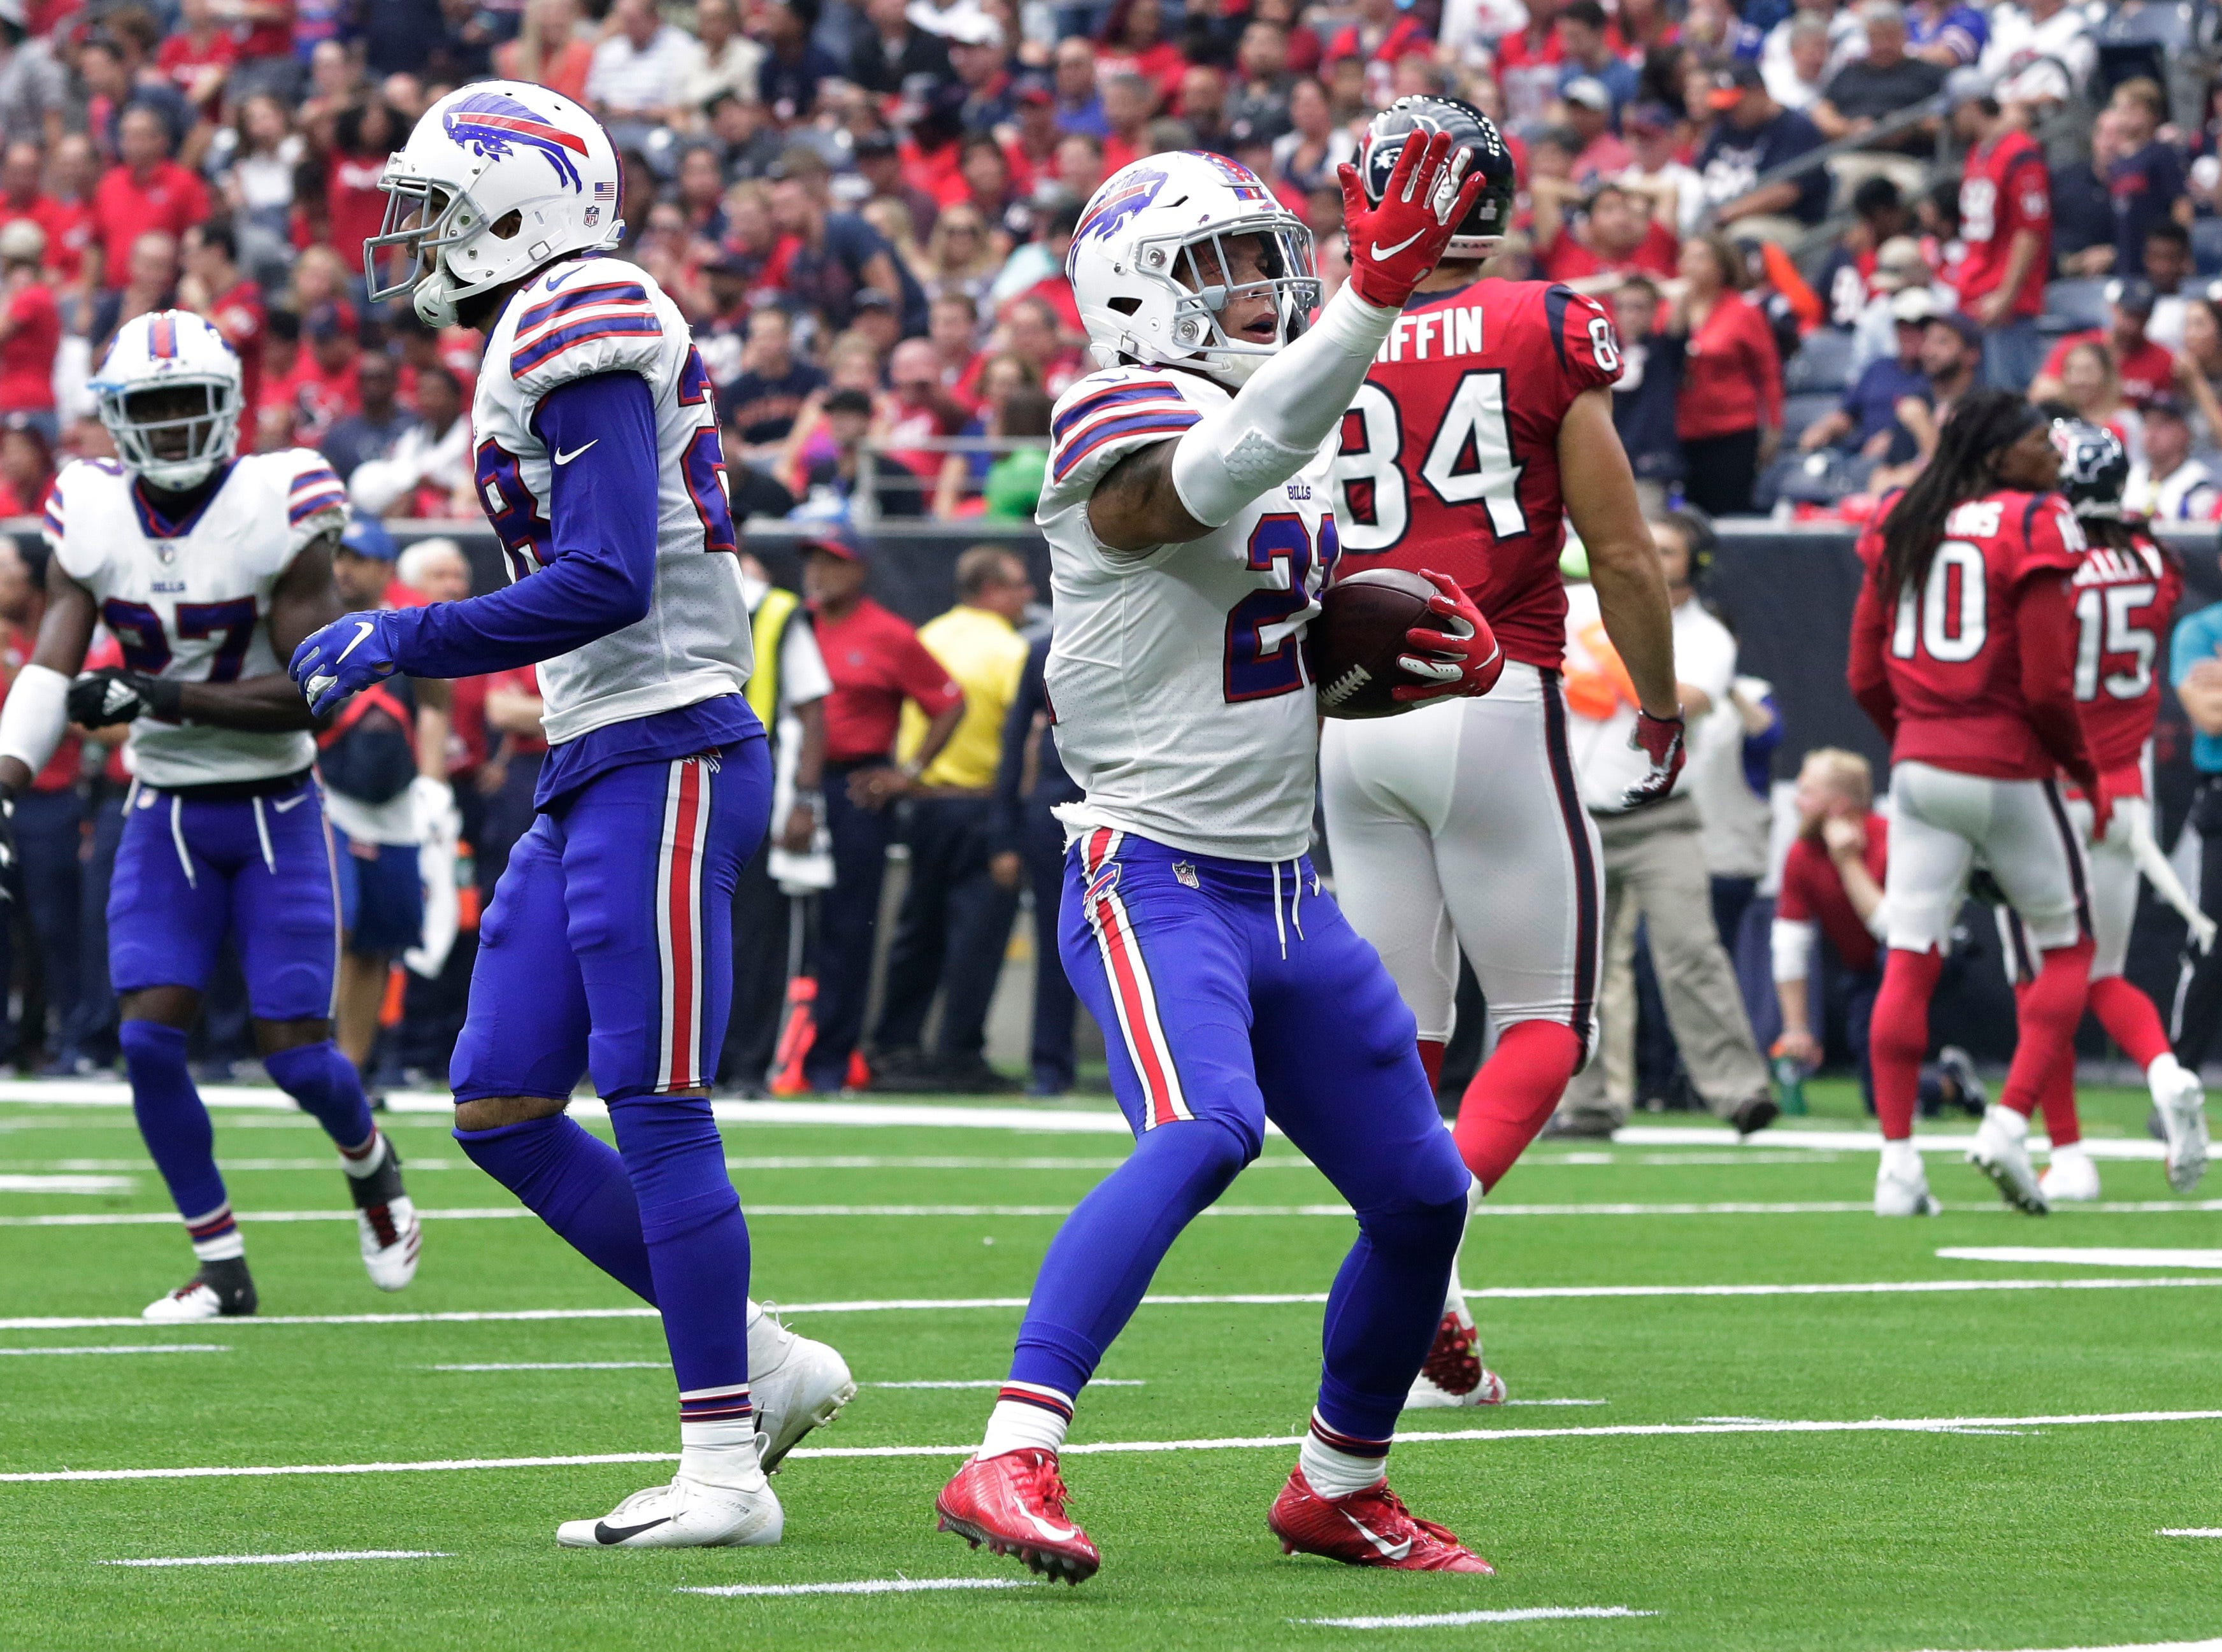 Buffalo Bills free safety Jordan Poyer (21) celebrates his interception during the first half of an NFL football game against the Houston Texans, Sunday, Oct. 14, 2018, in Houston. (AP Photo/Michael Wyke)